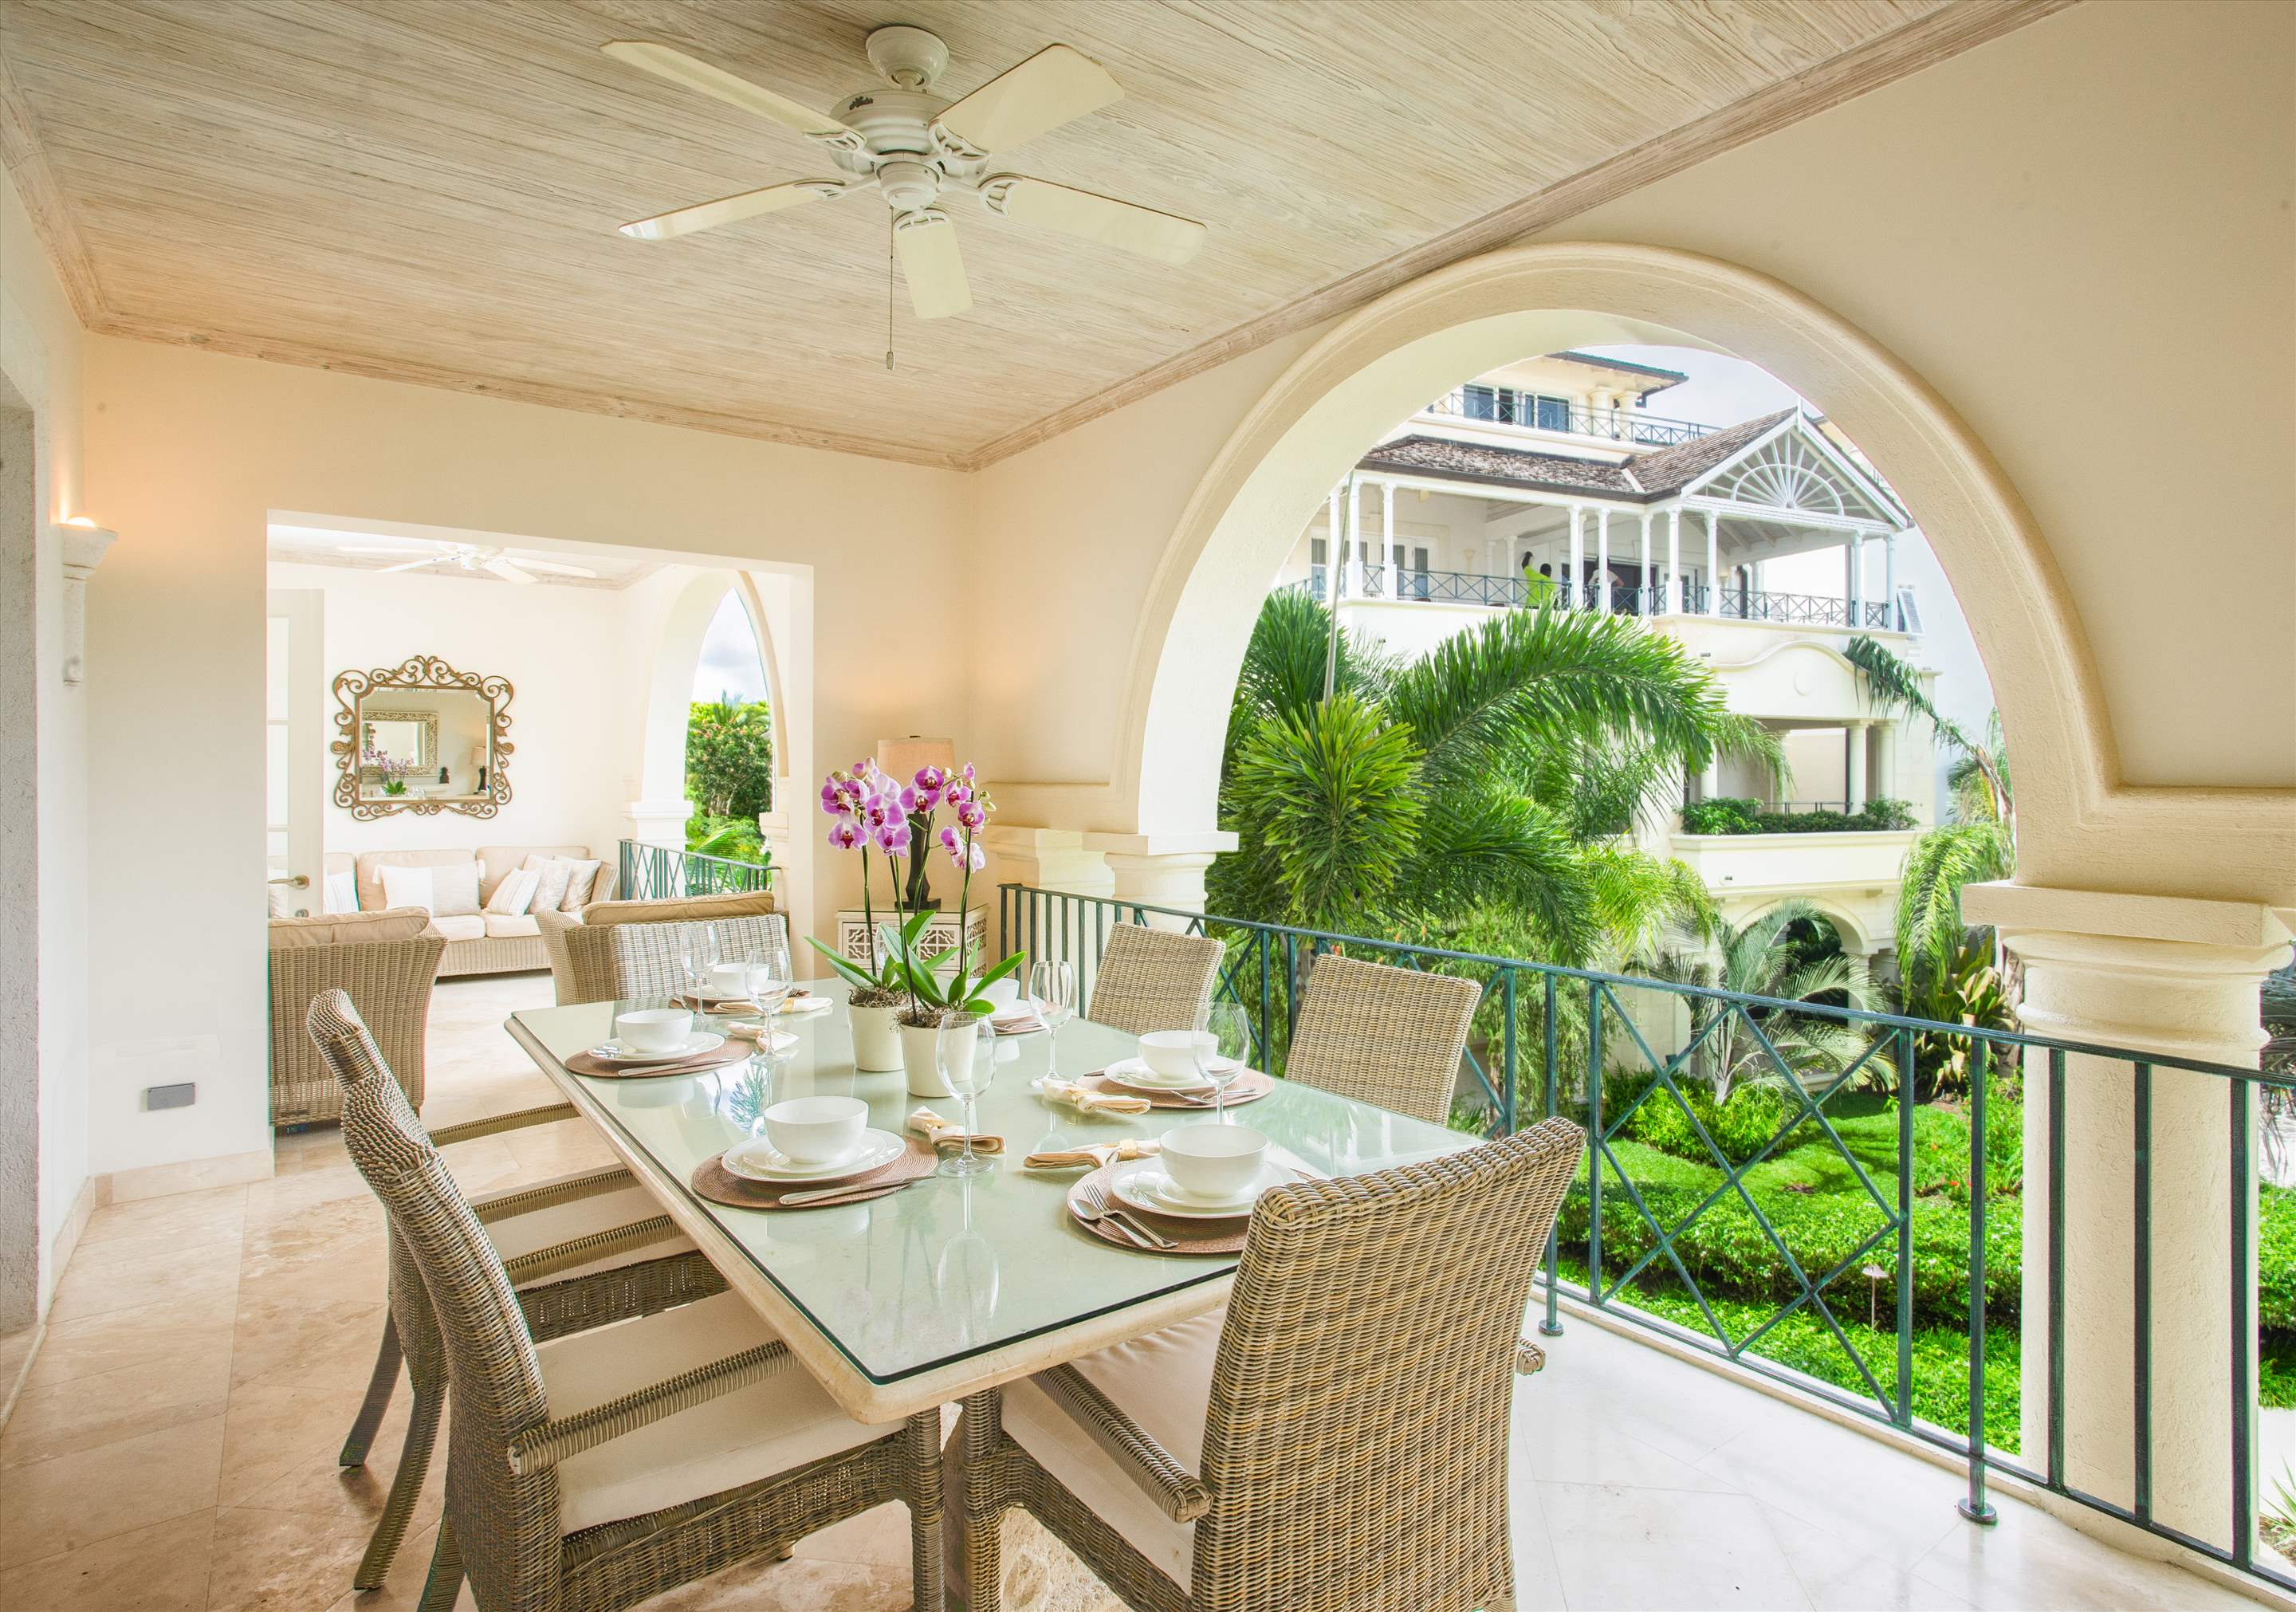 Schooner Bay 205, Two Bedroom rate, 2 bedroom apartment in St. James & West Coast, Barbados Photo #2